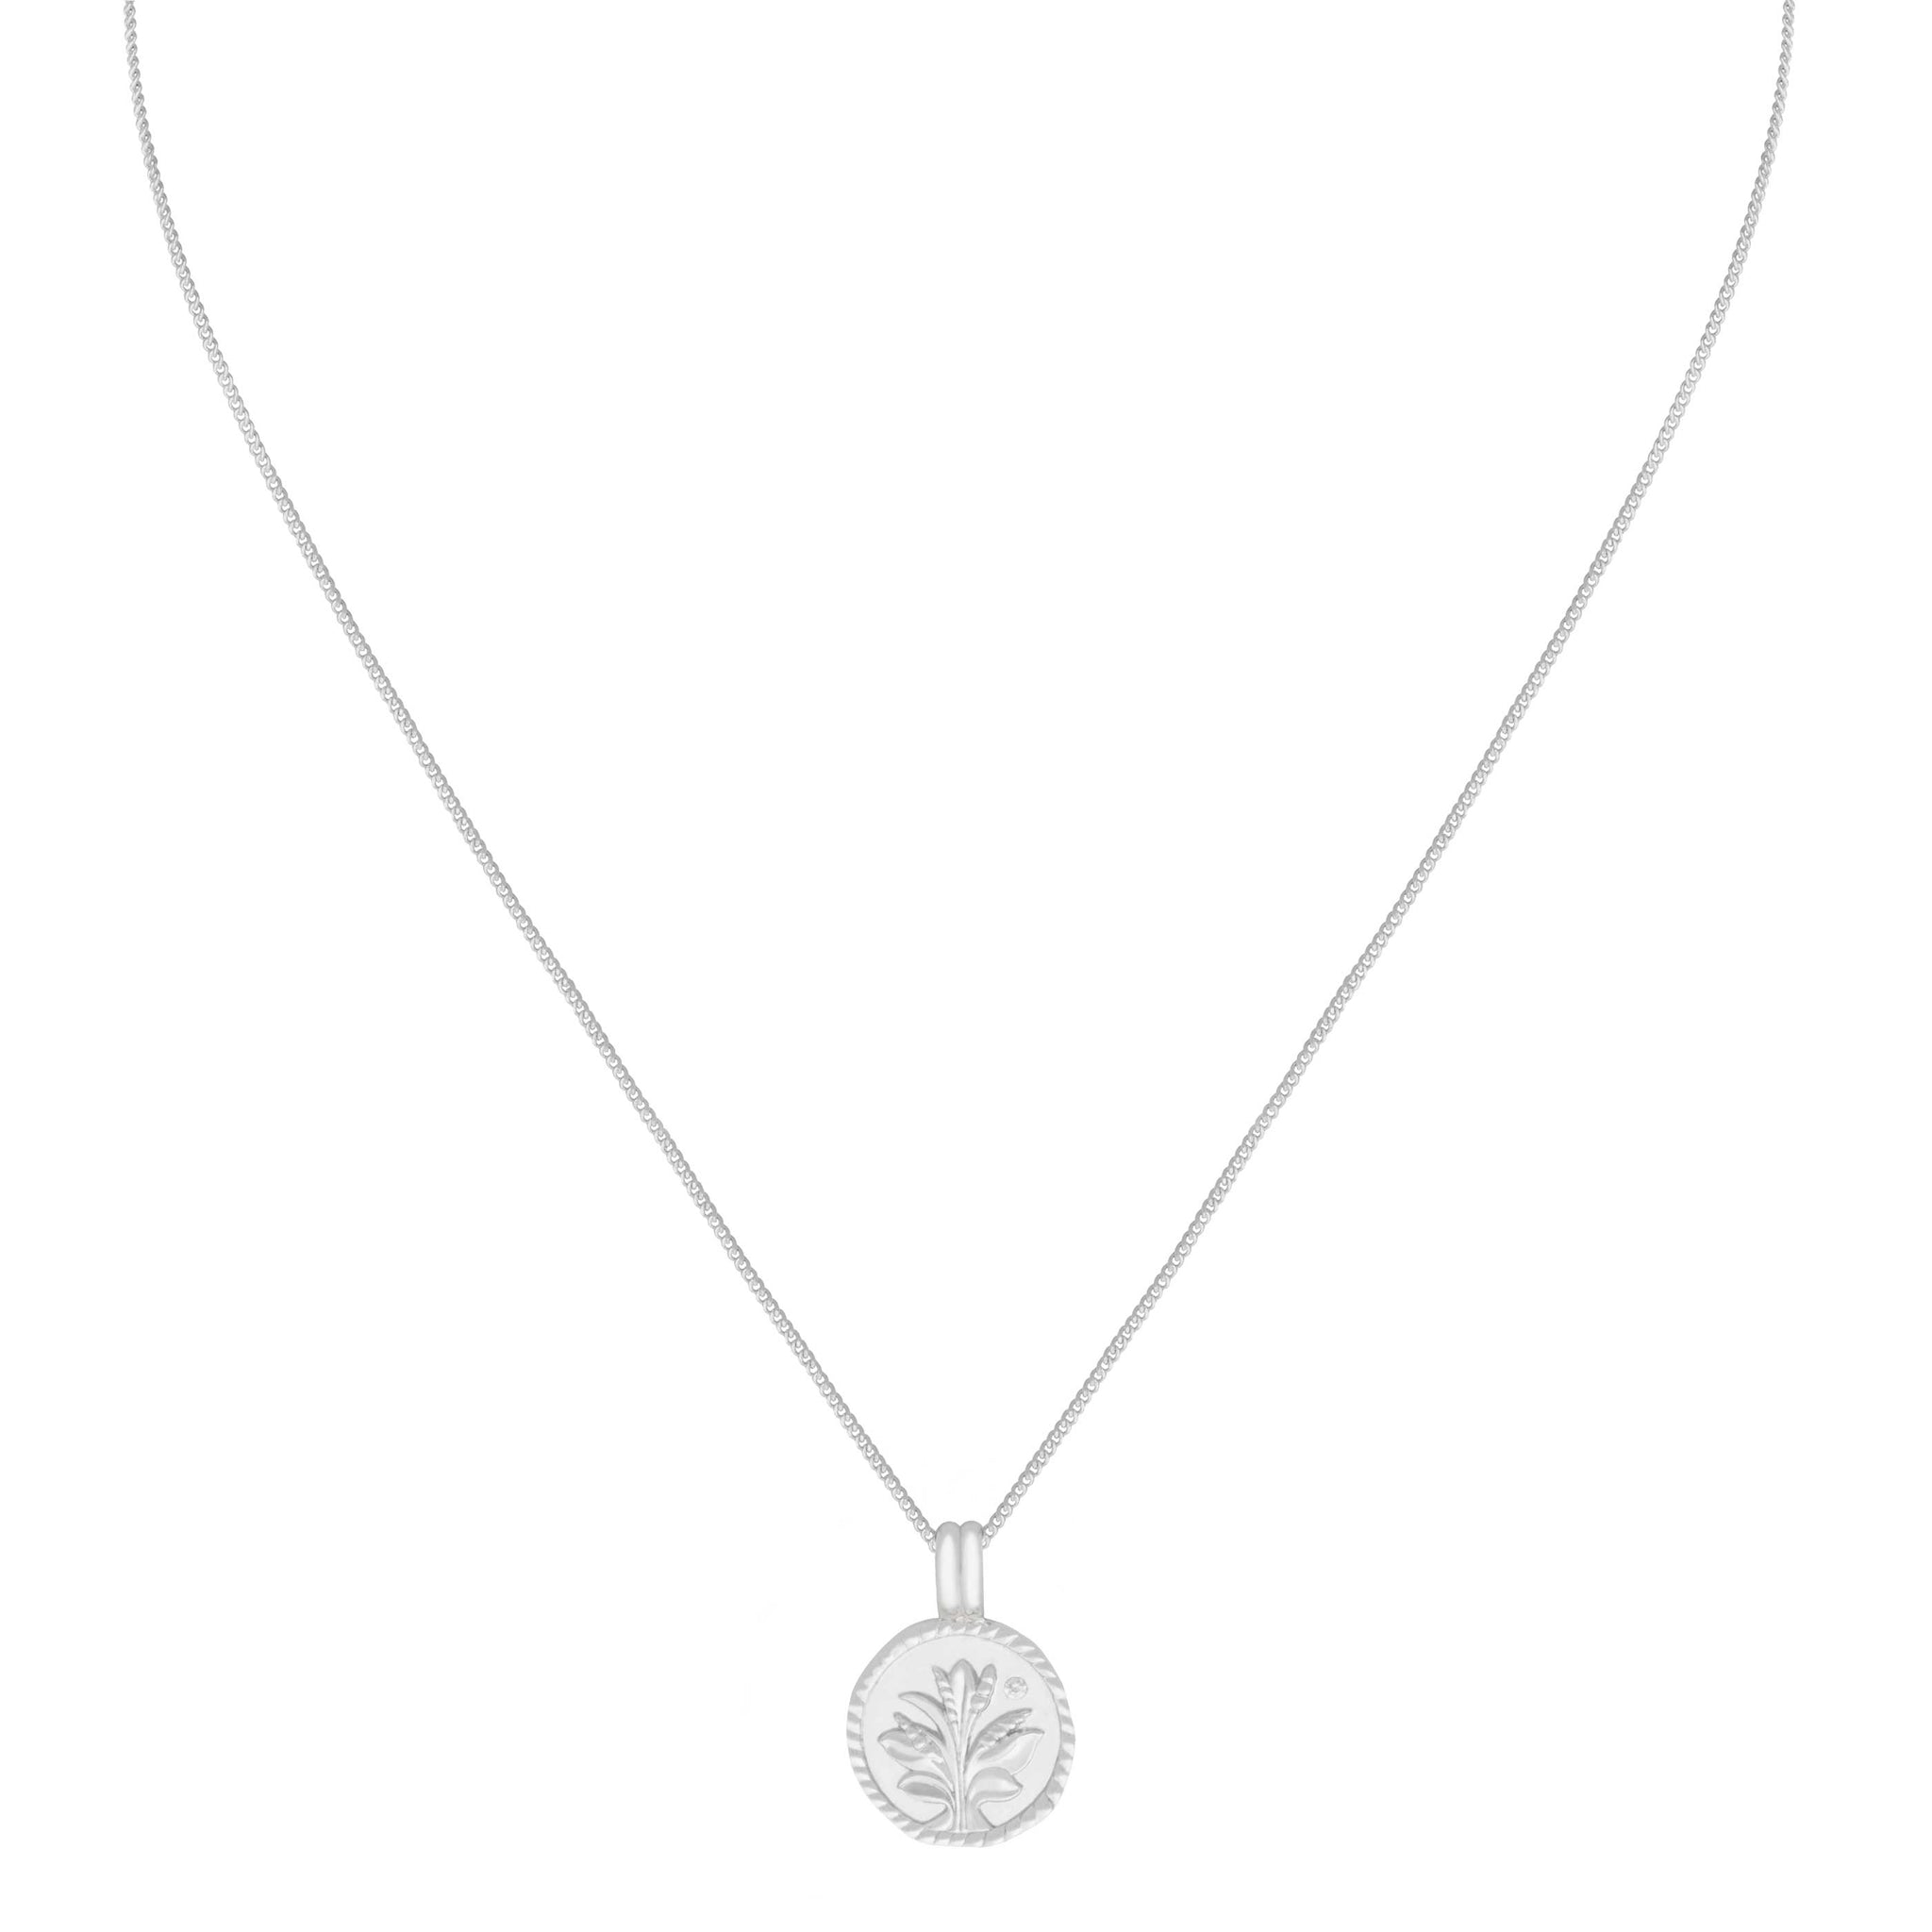 Blossom Coin Pendant Necklace in Silver